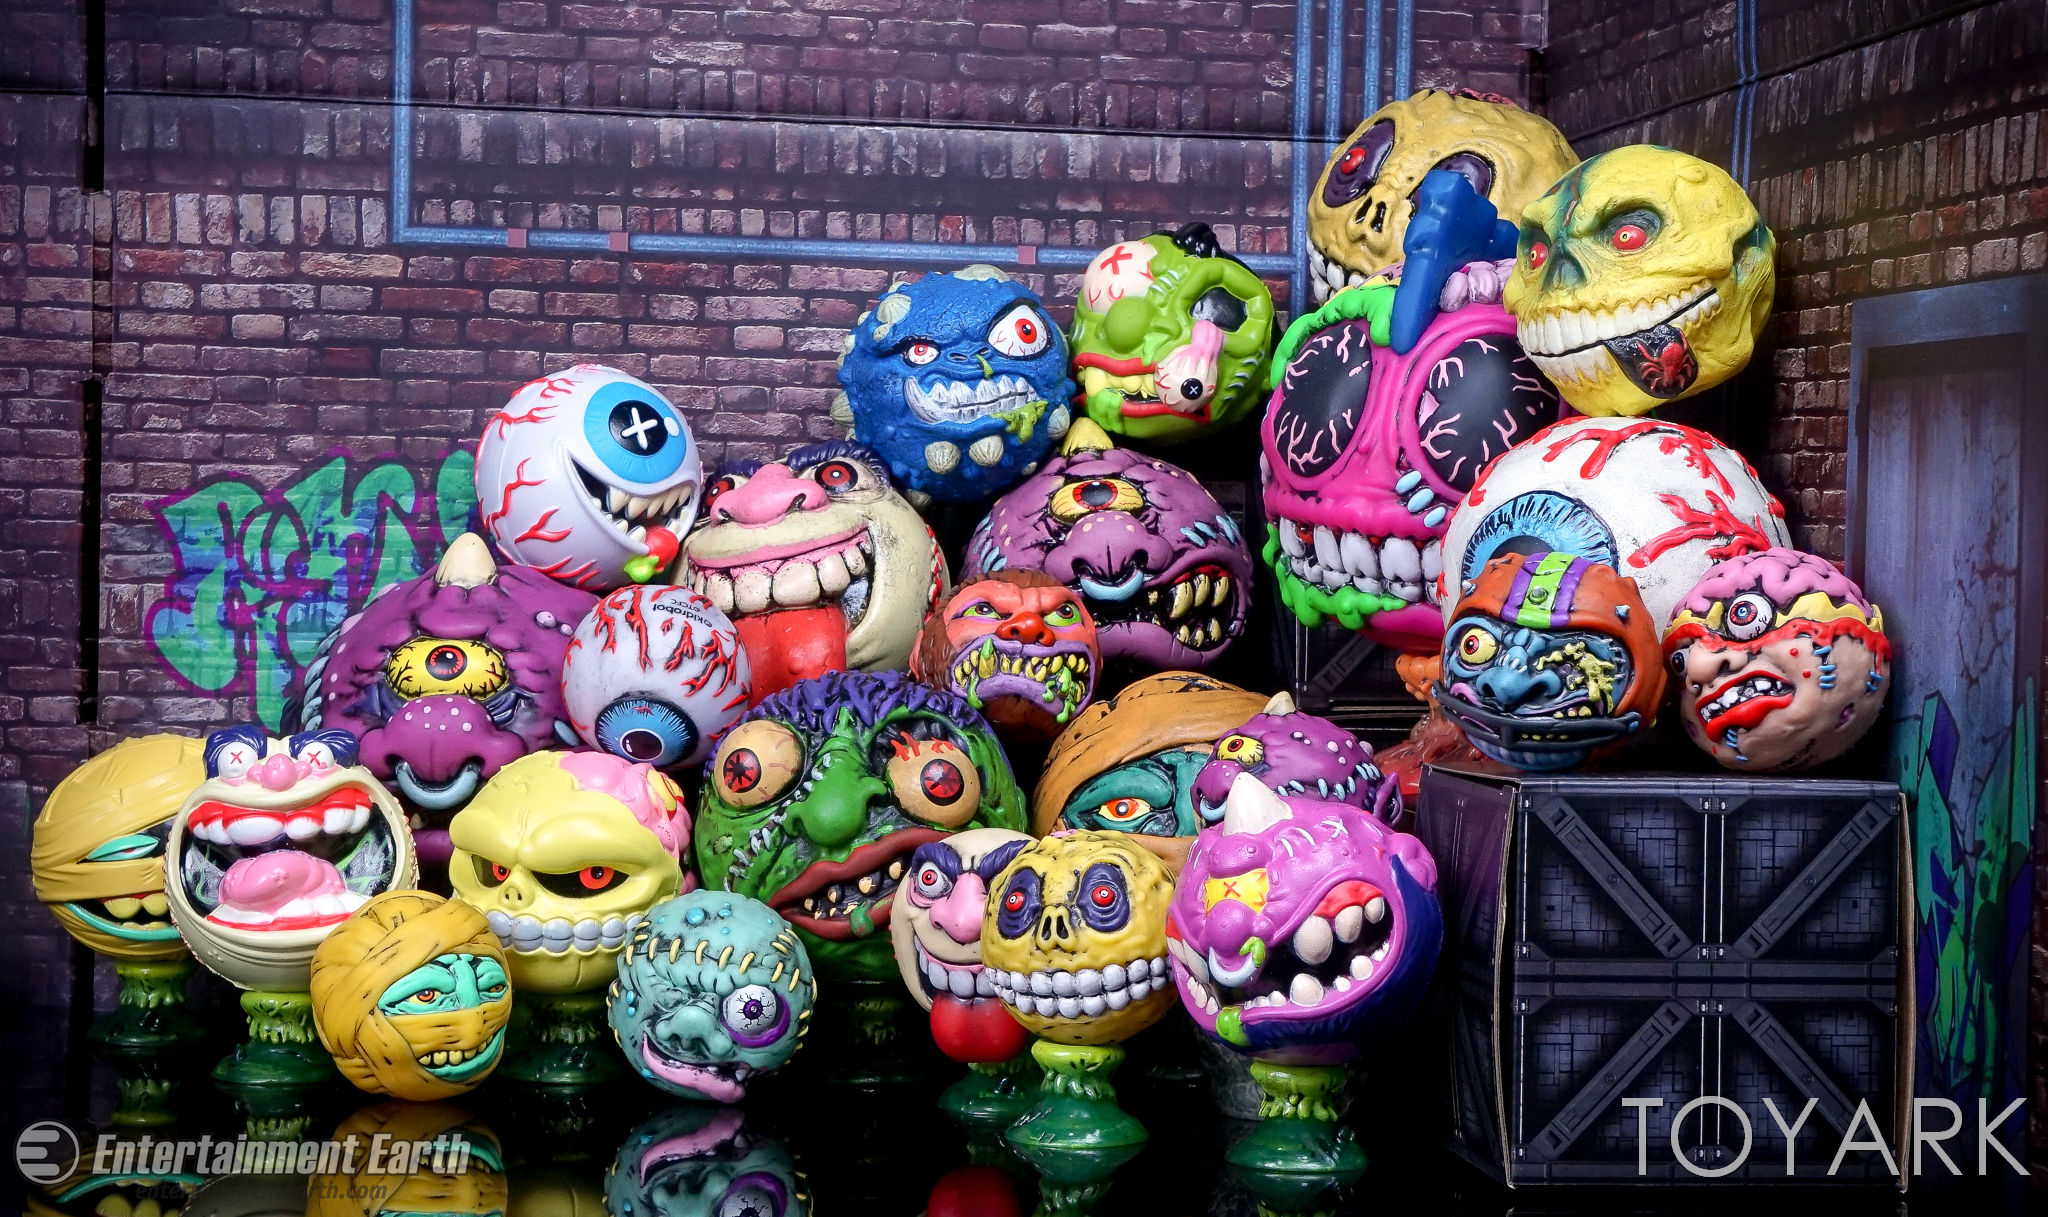 http://news.toyark.com/wp-content/uploads/sites/4/2017/03/Kidrobot-Foam-Madballs-032.jpg